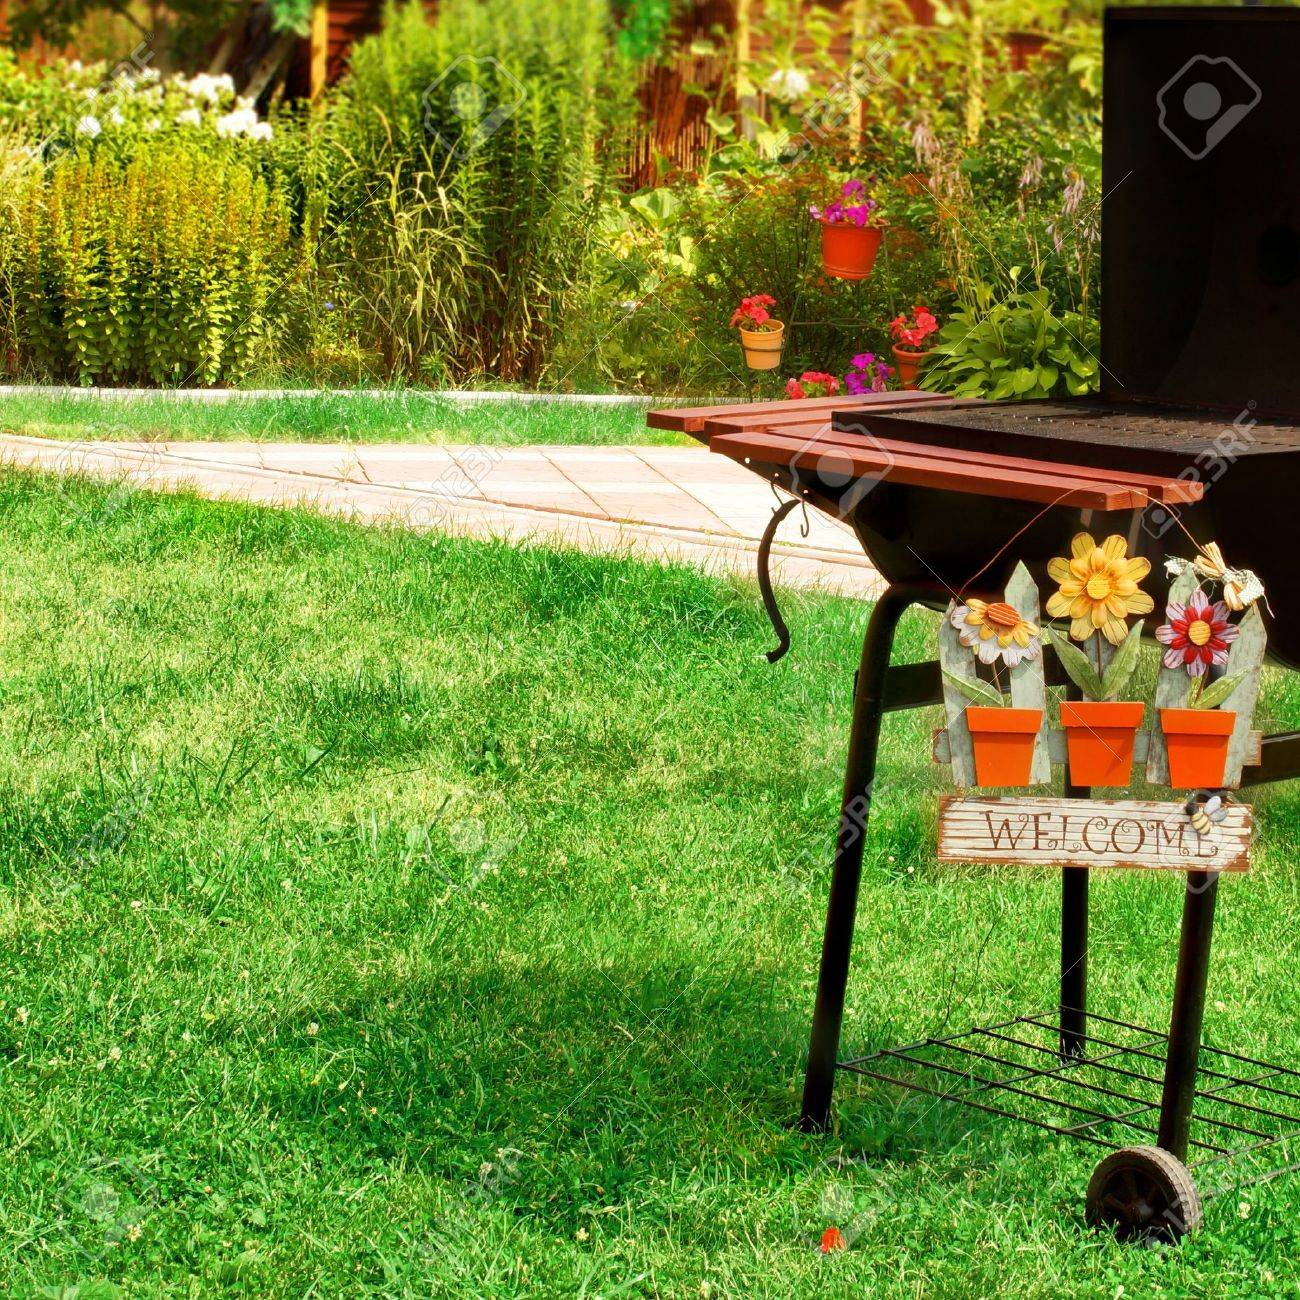 bbq grill and welcome sign in the backyard background with space